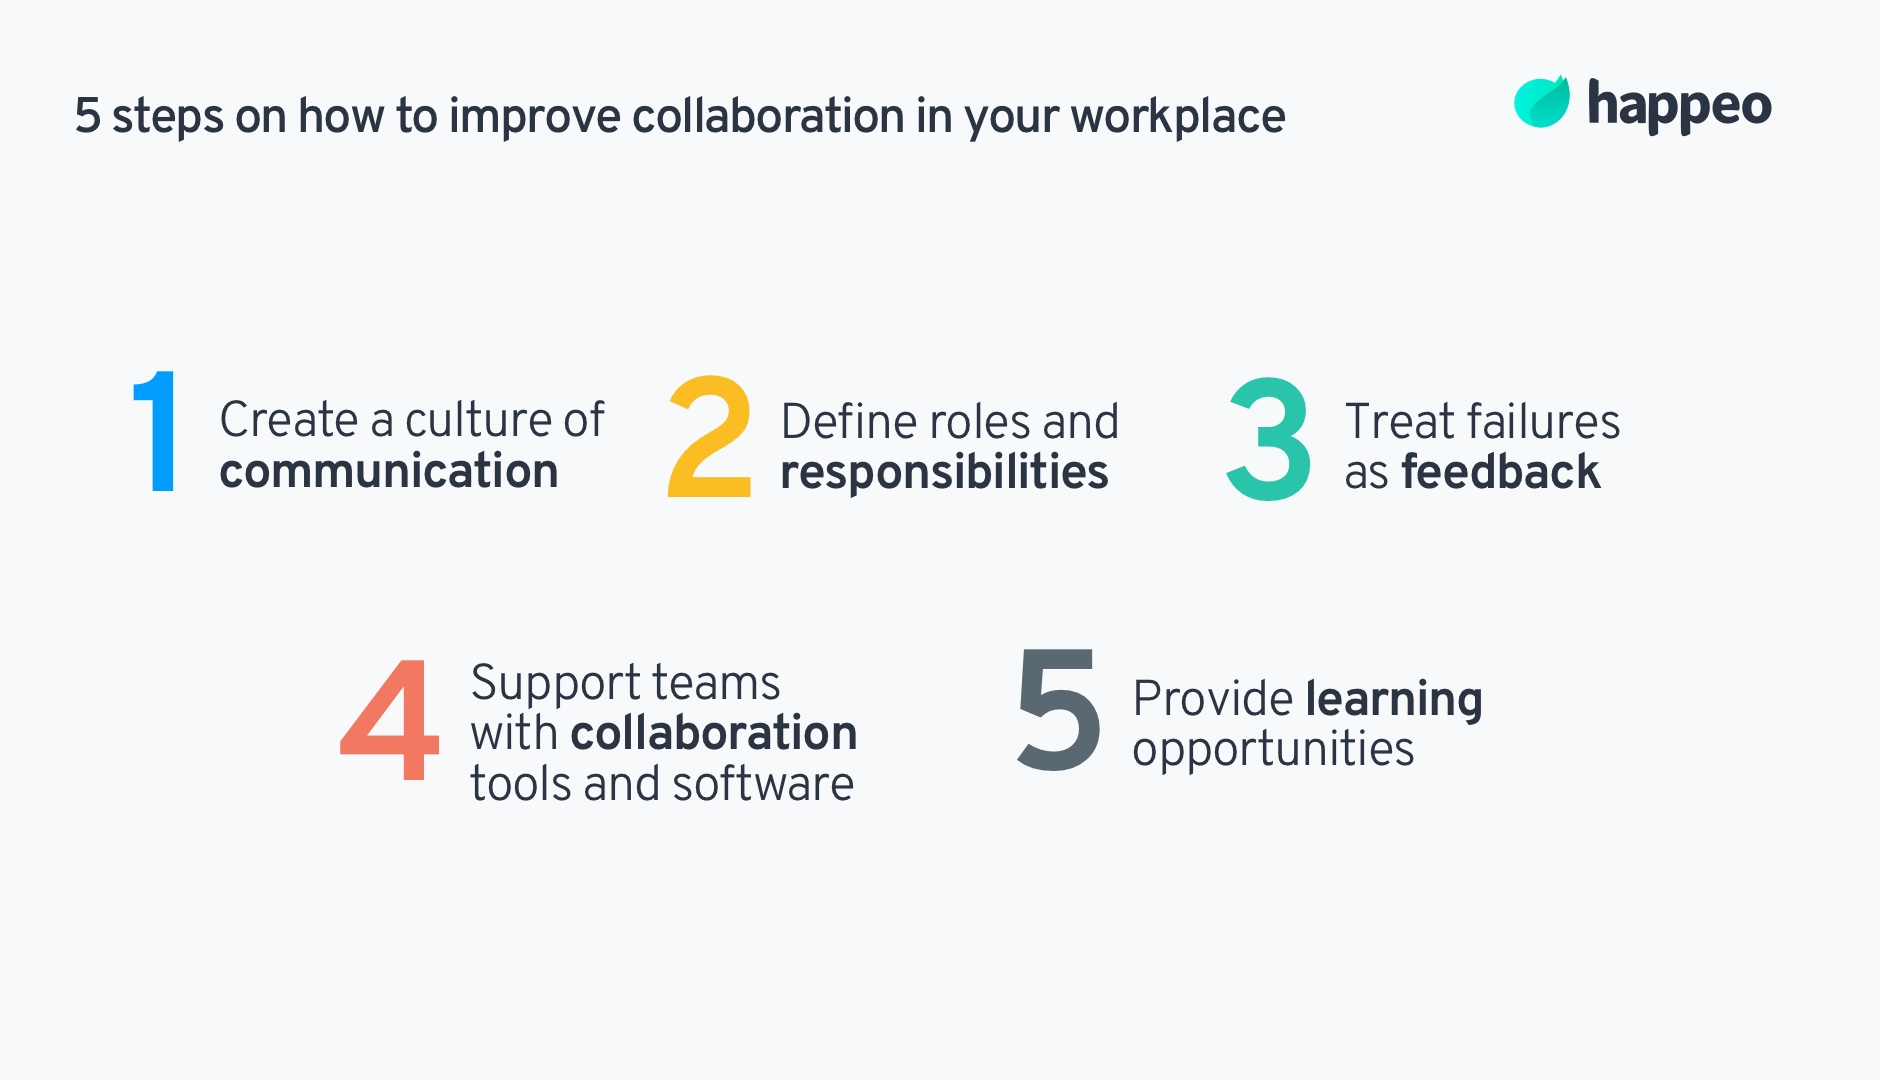 steps to improve collaboration at work